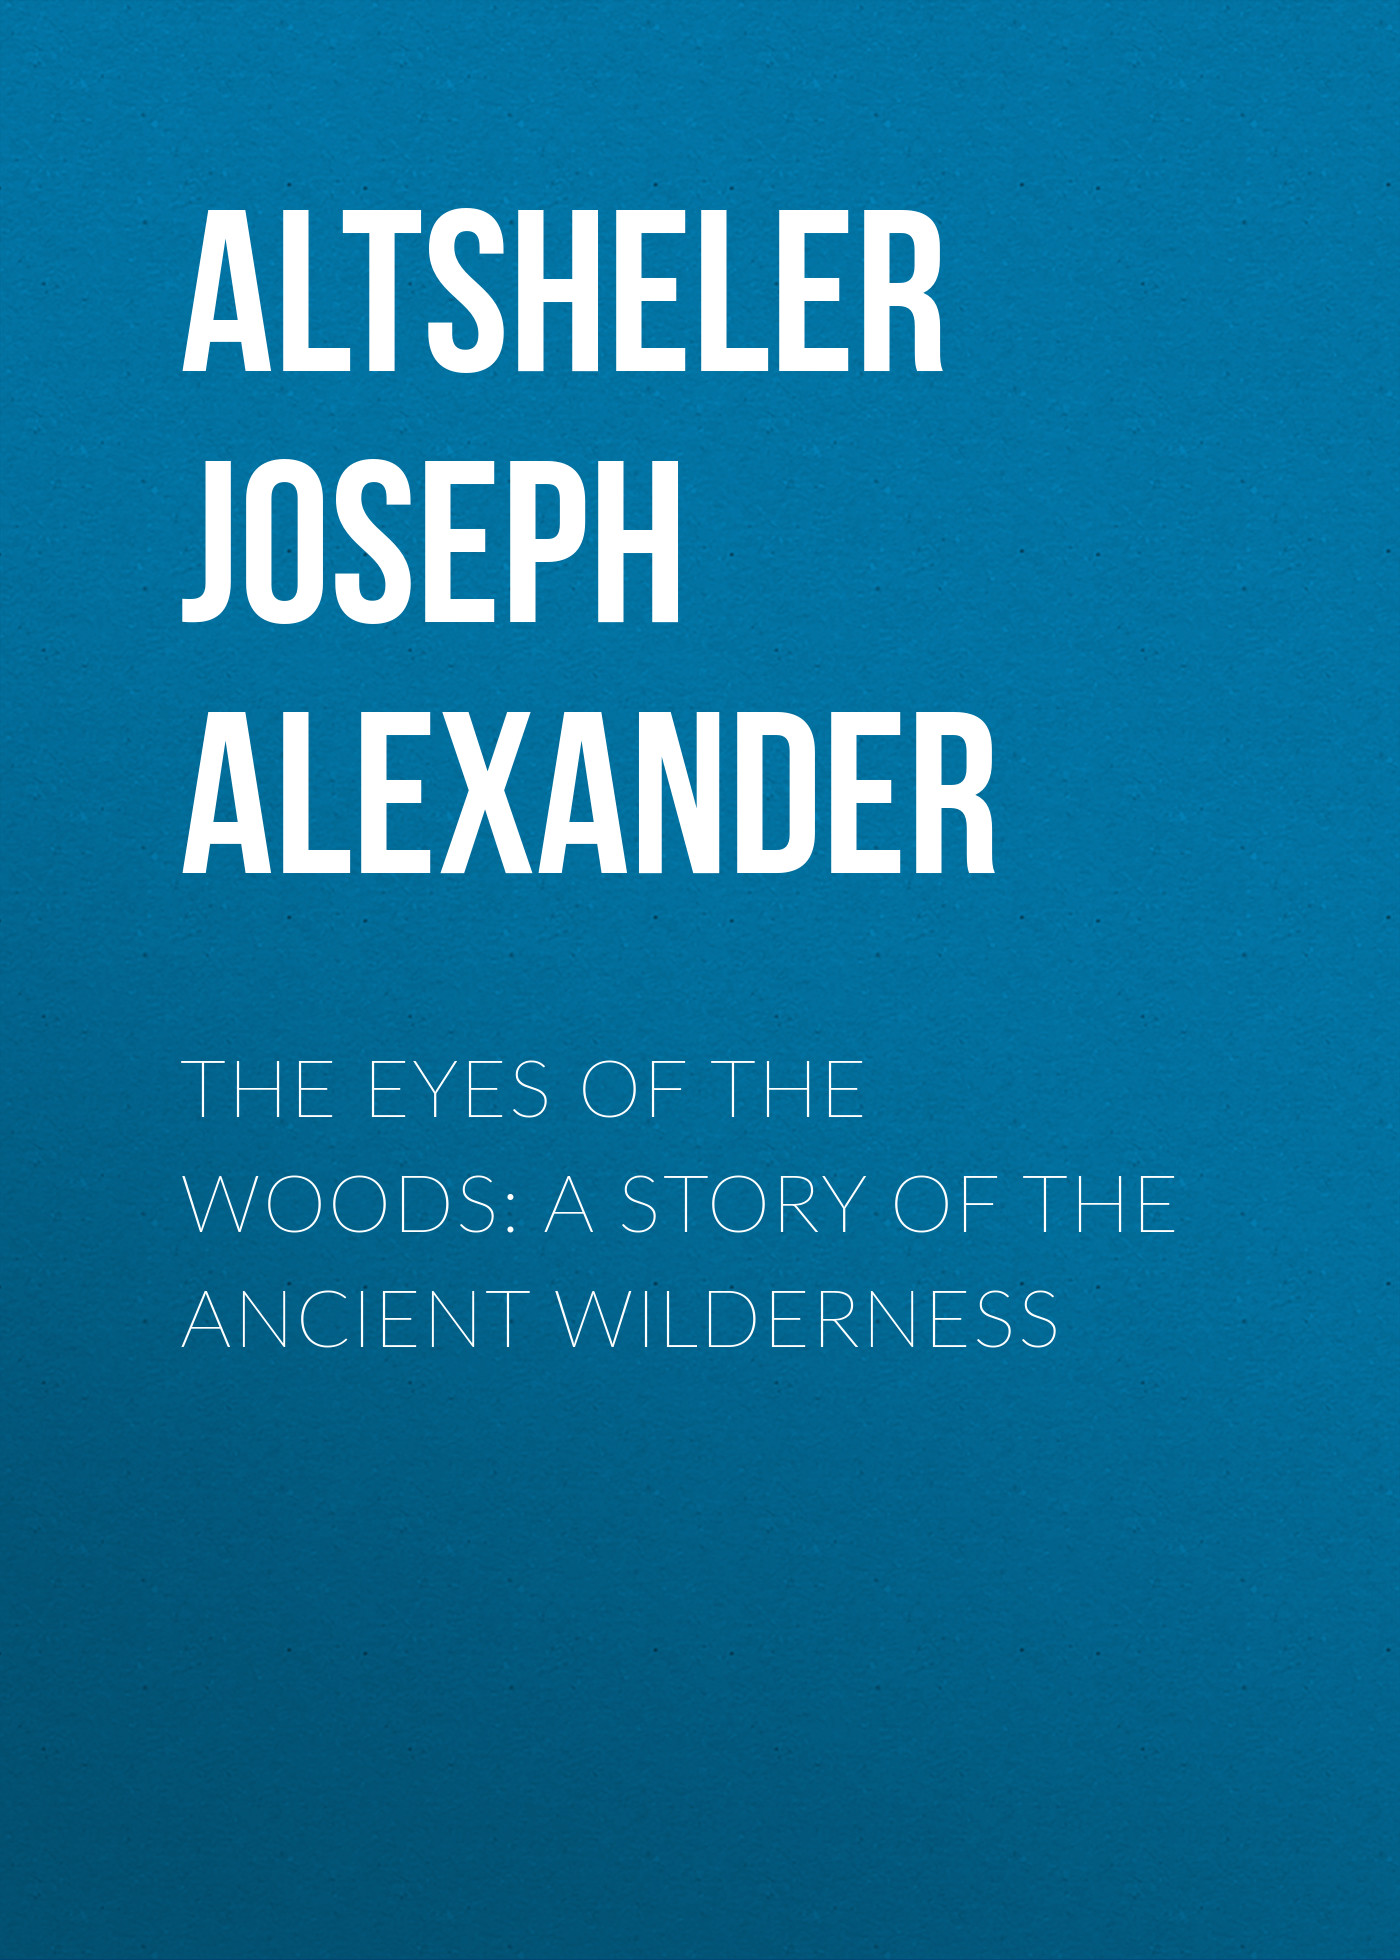 Altsheler Joseph Alexander The Eyes of the Woods: A Story of the Ancient Wilderness the eyes of the cat